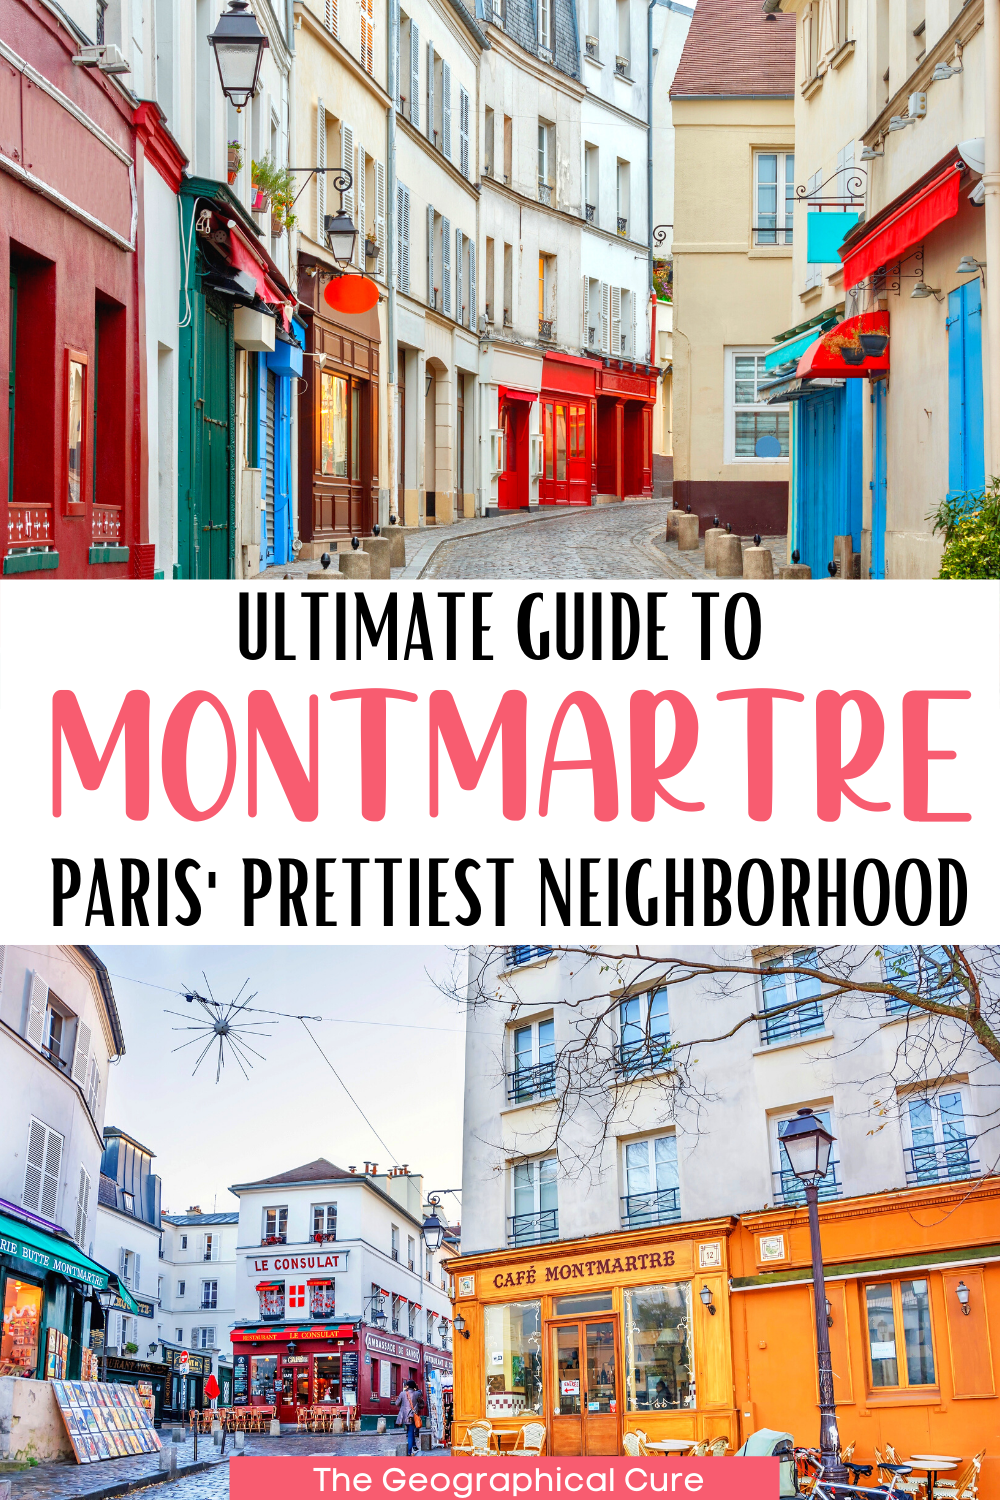 ultimate guide to the must see sites in Paris' Montmartre neighborhood